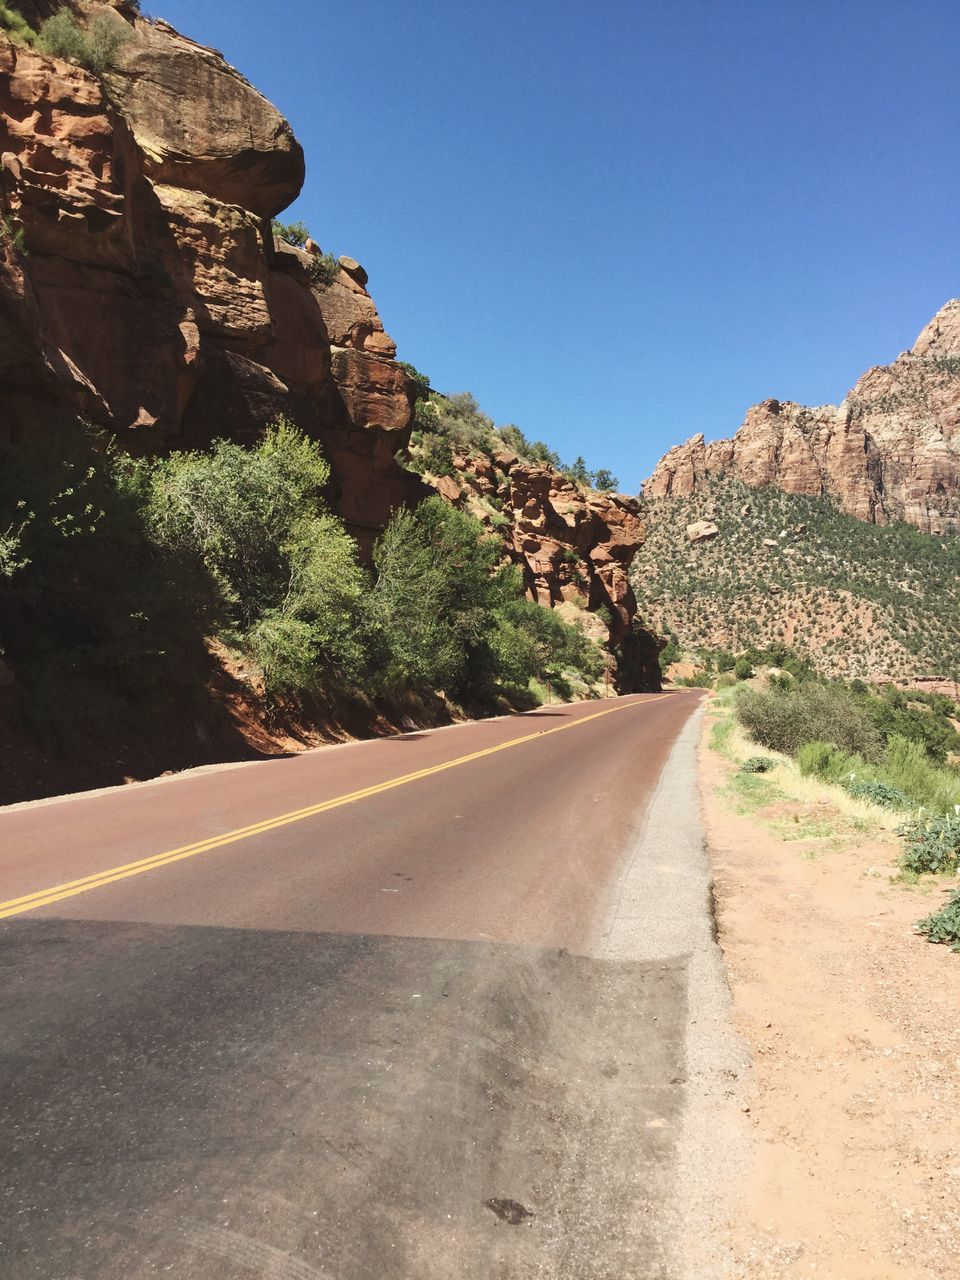 The Way Forward Clear Sky Rock Formation Mountain Red Rock Formation Road To Nowhere Zion National Park